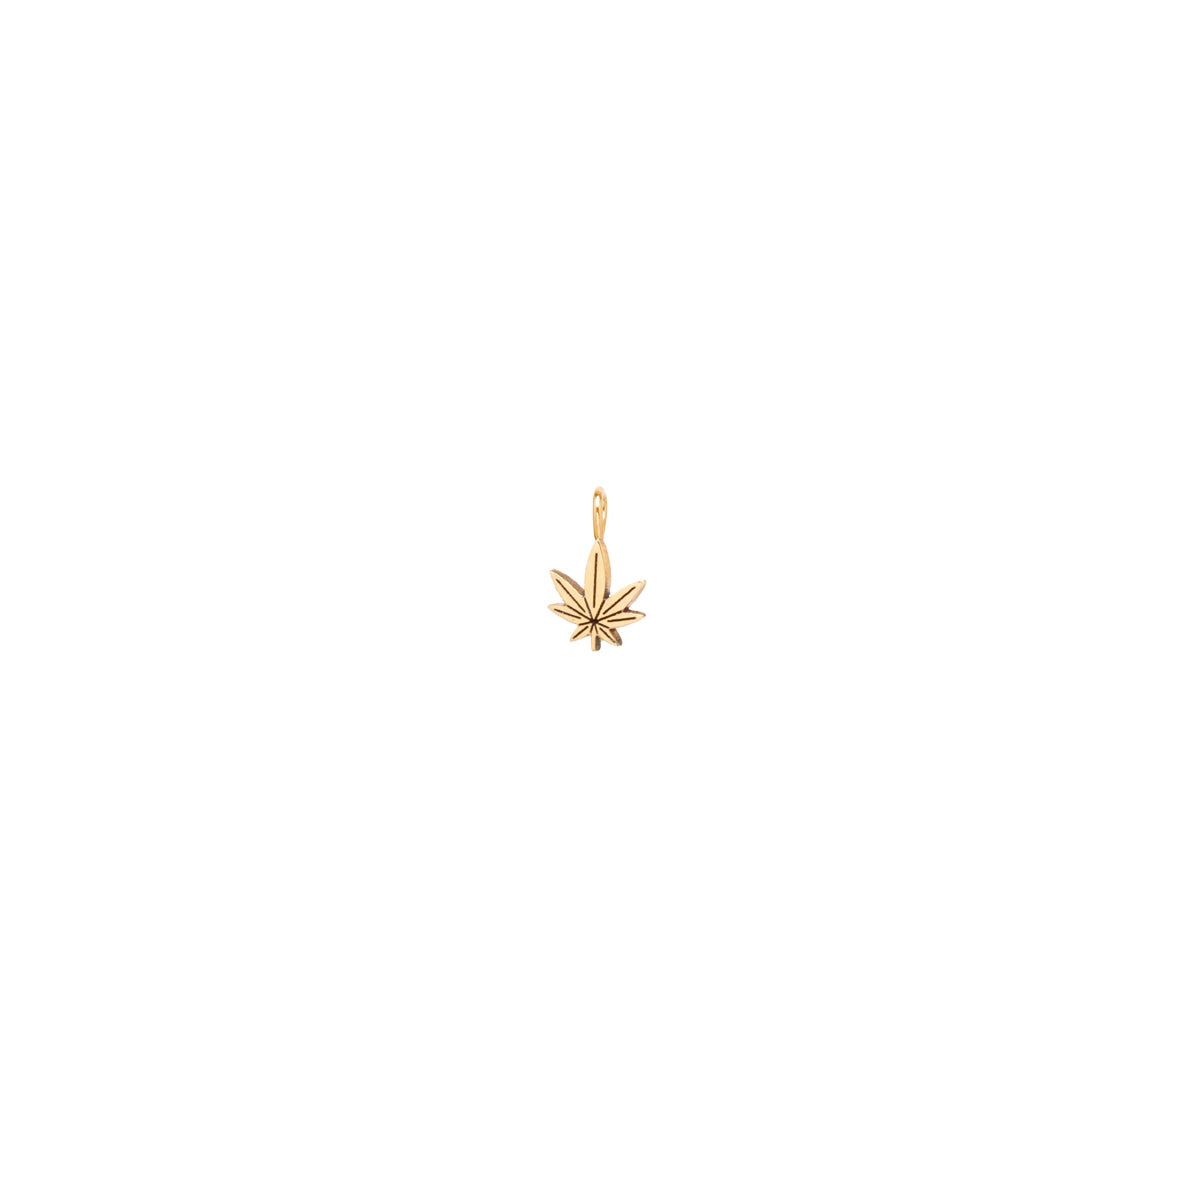 14k single midi bitty mary jane charm pendant